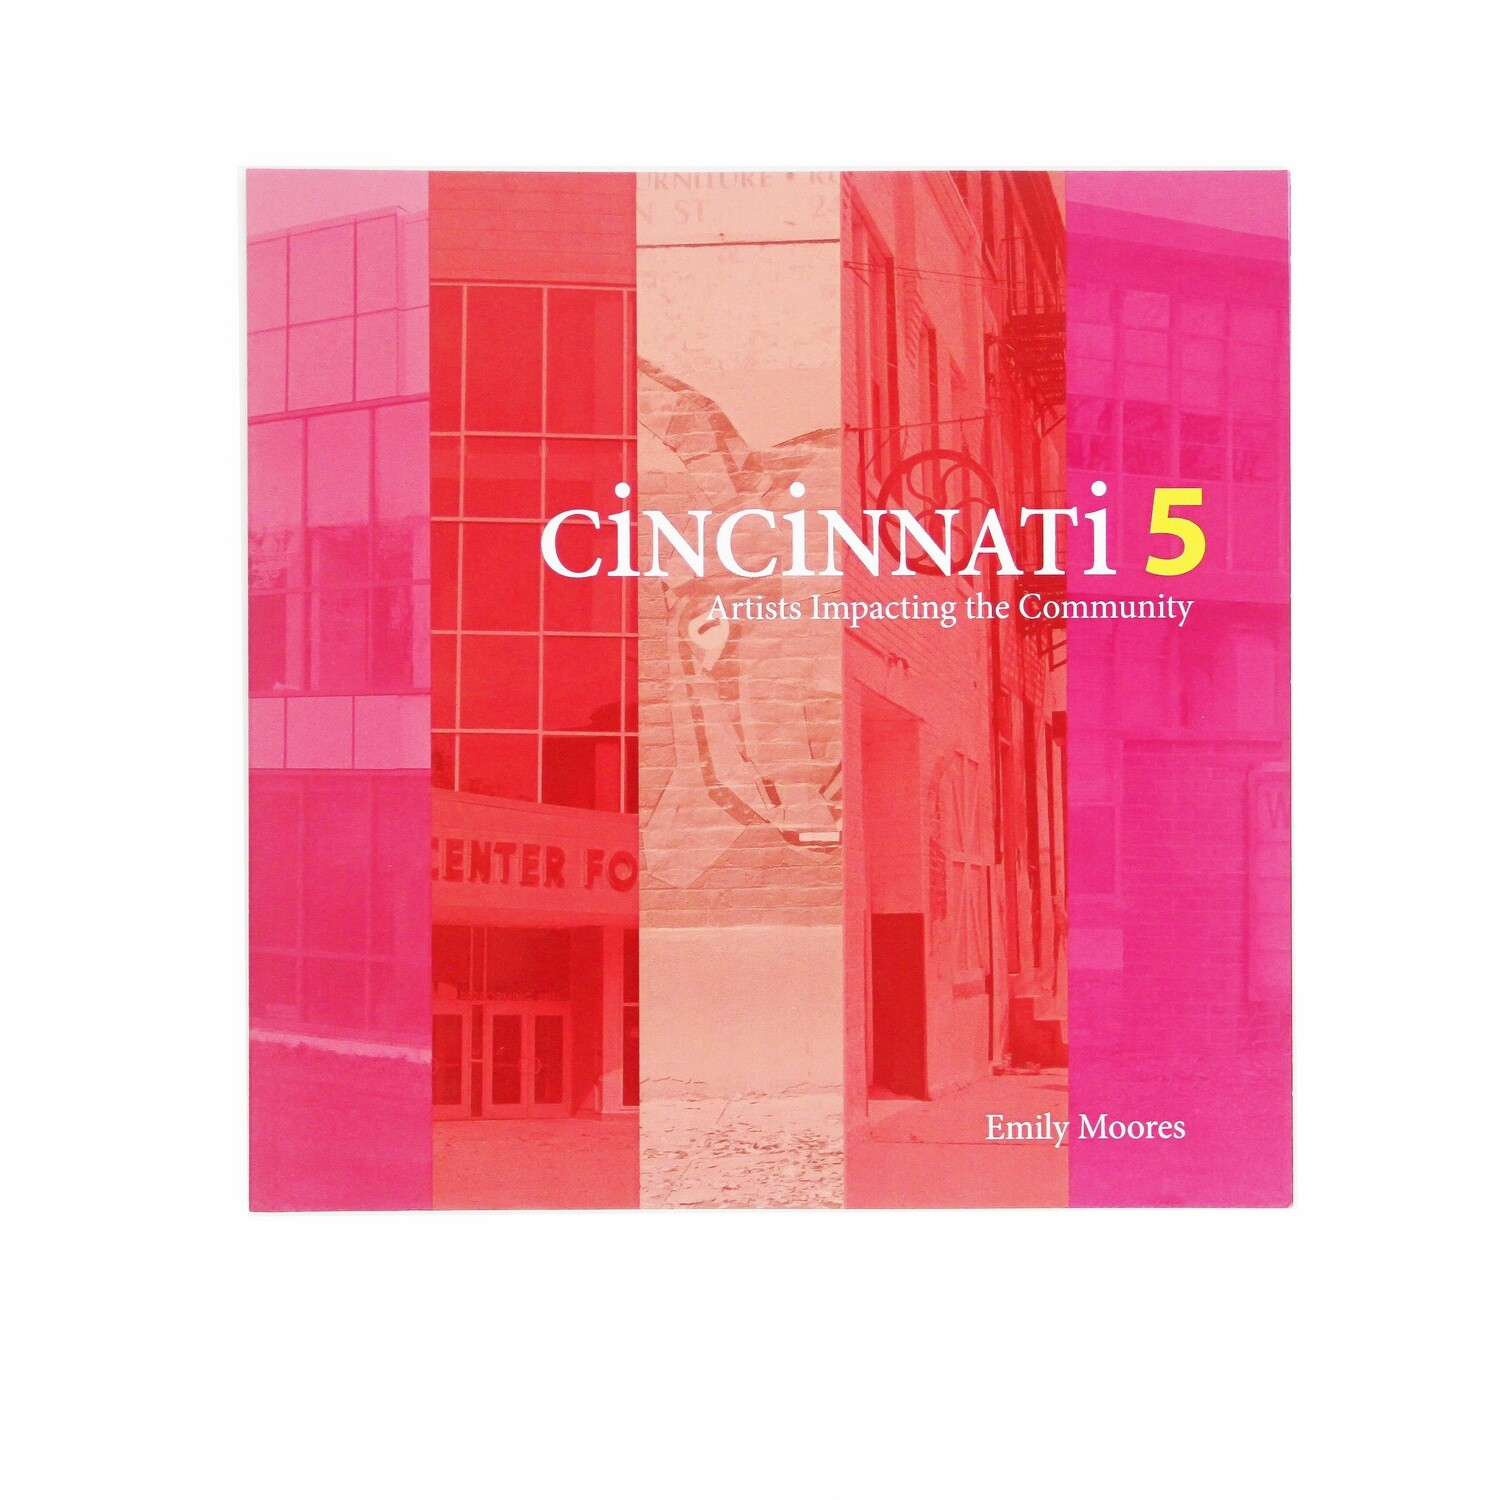 Cincinnati 5: Artists Impacting the Community